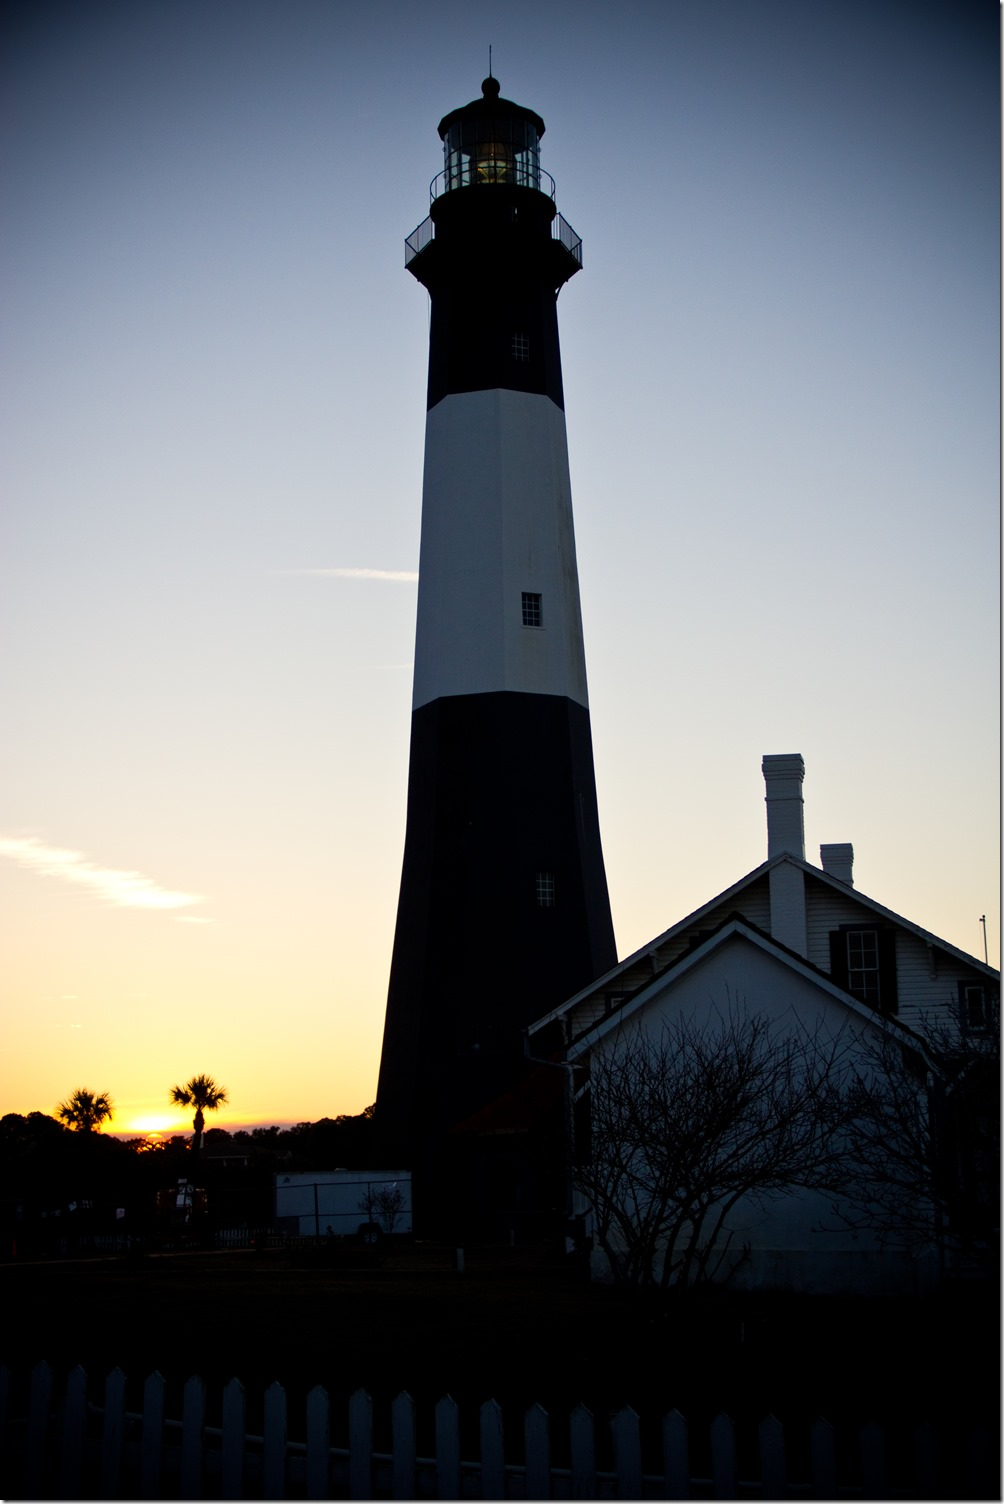 Don't miss the chance to take gorgeous photographs of all the amazing scenery on your Tybee Island Georgia Vacation, like this stunning lighthouse at sunset.